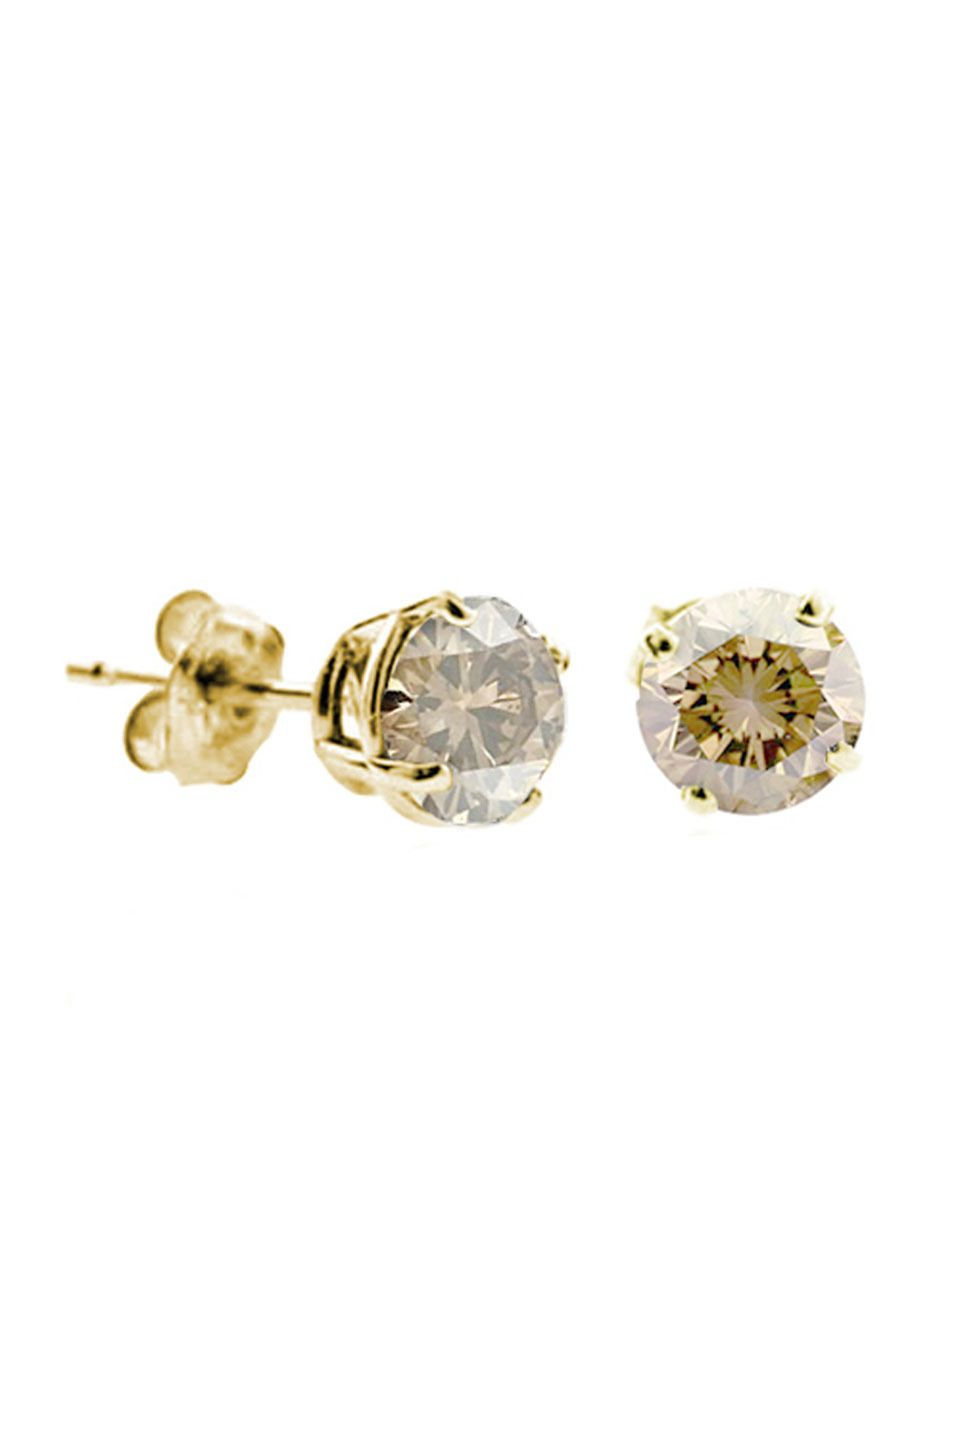 furuhashi ear starry earrings champdia hikaru stud products diamond champagne swing